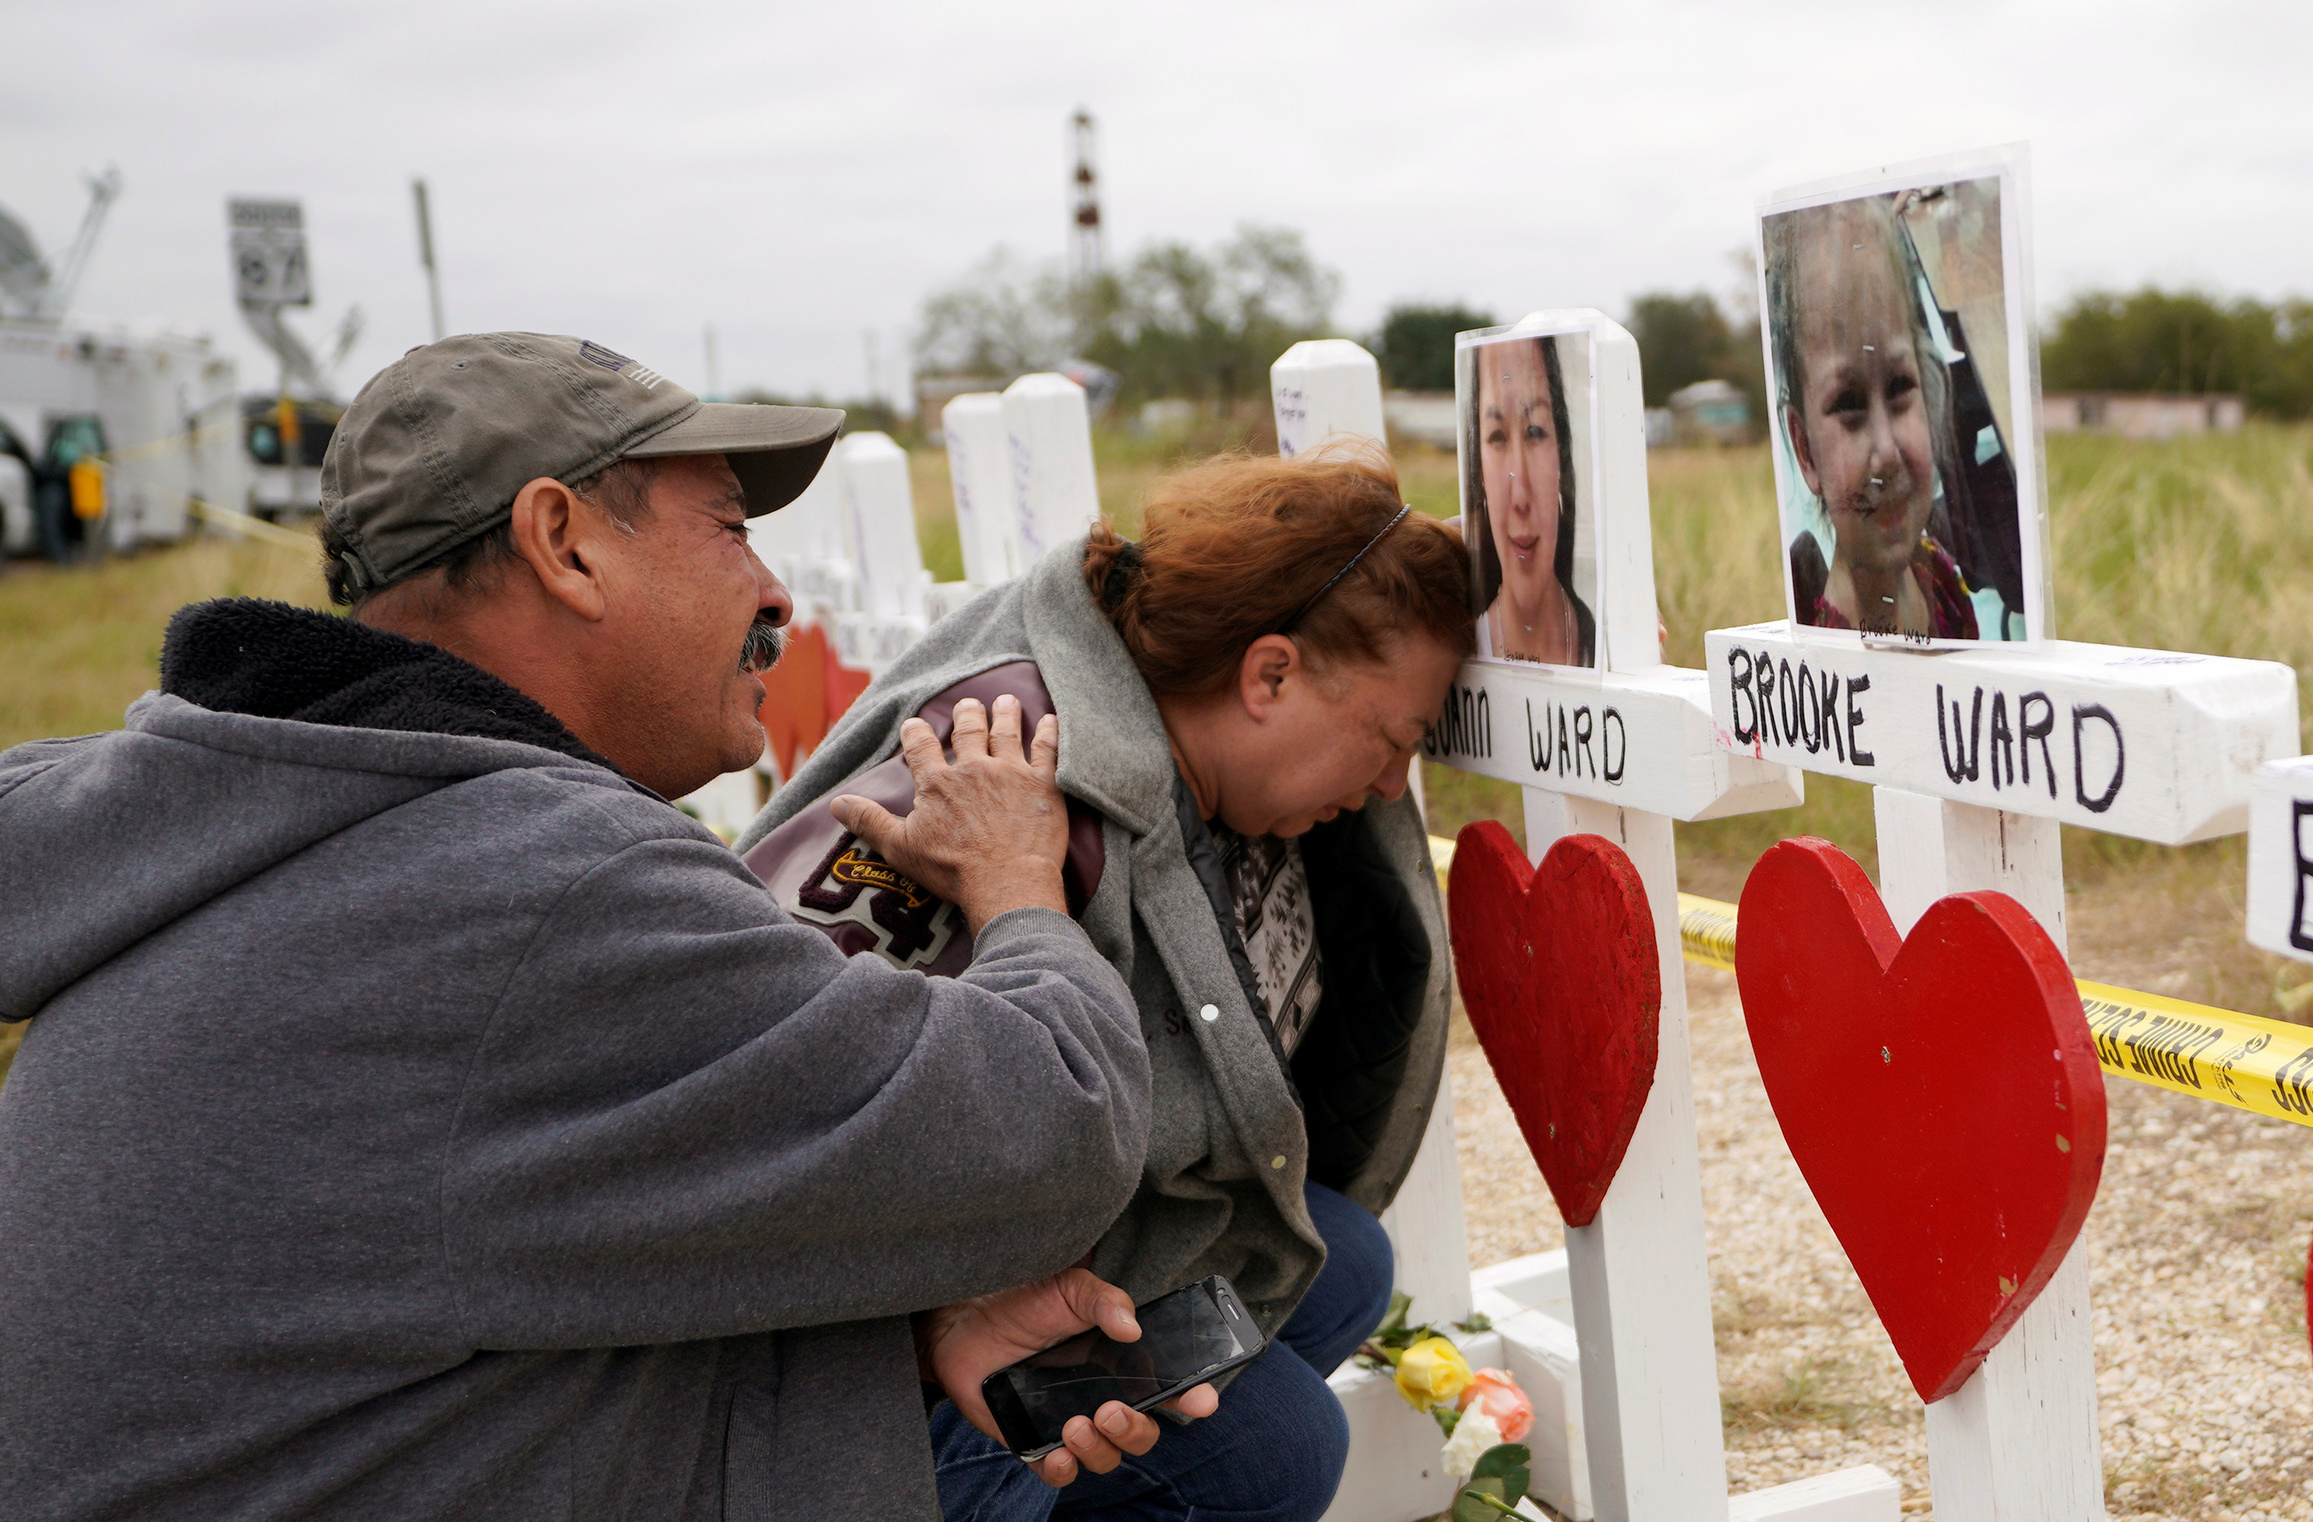 Ward family ripped apart by the Texas church massacre: 'She lived for those kids'